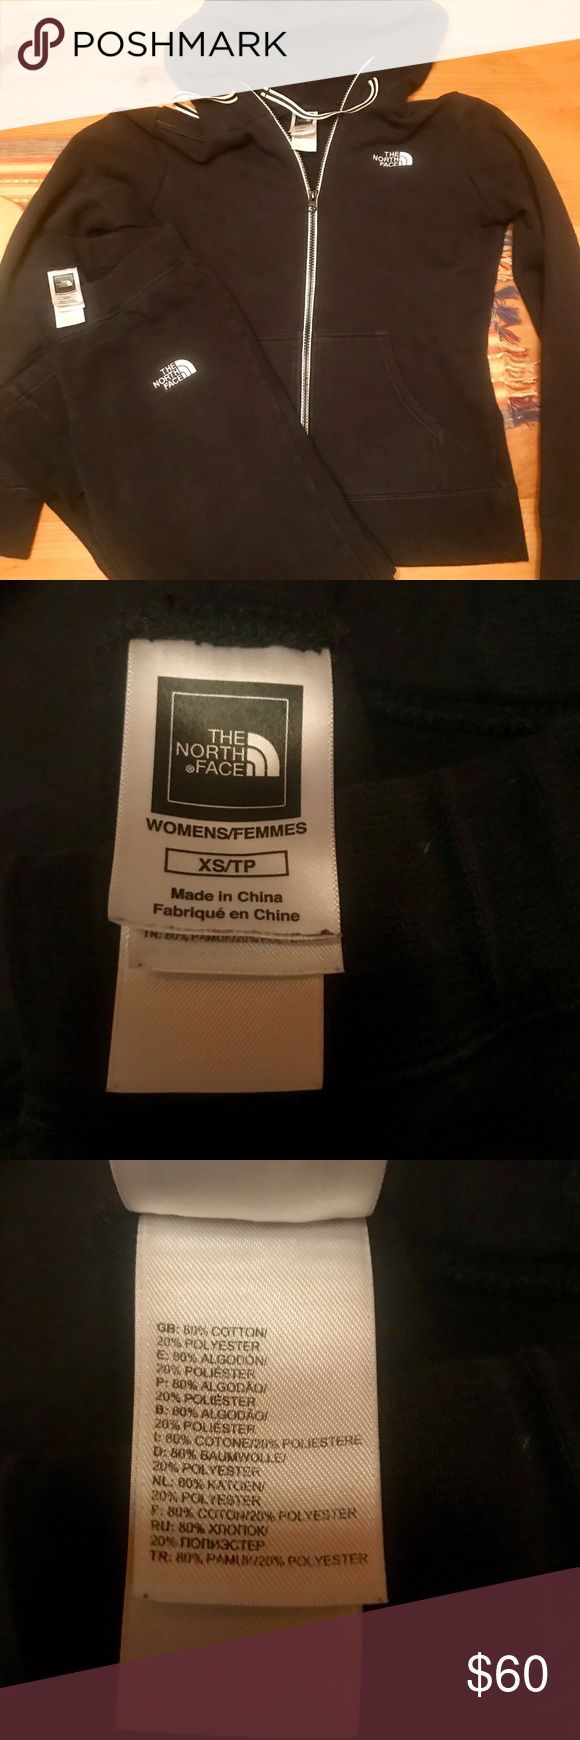 North Face Jacket and Pants Set Warmup set by North Face in black with white detail / kangaroo pockets and hood / drawstring waist / excellent used condition / sz XS The North Face Jackets & Coats Utility Jackets